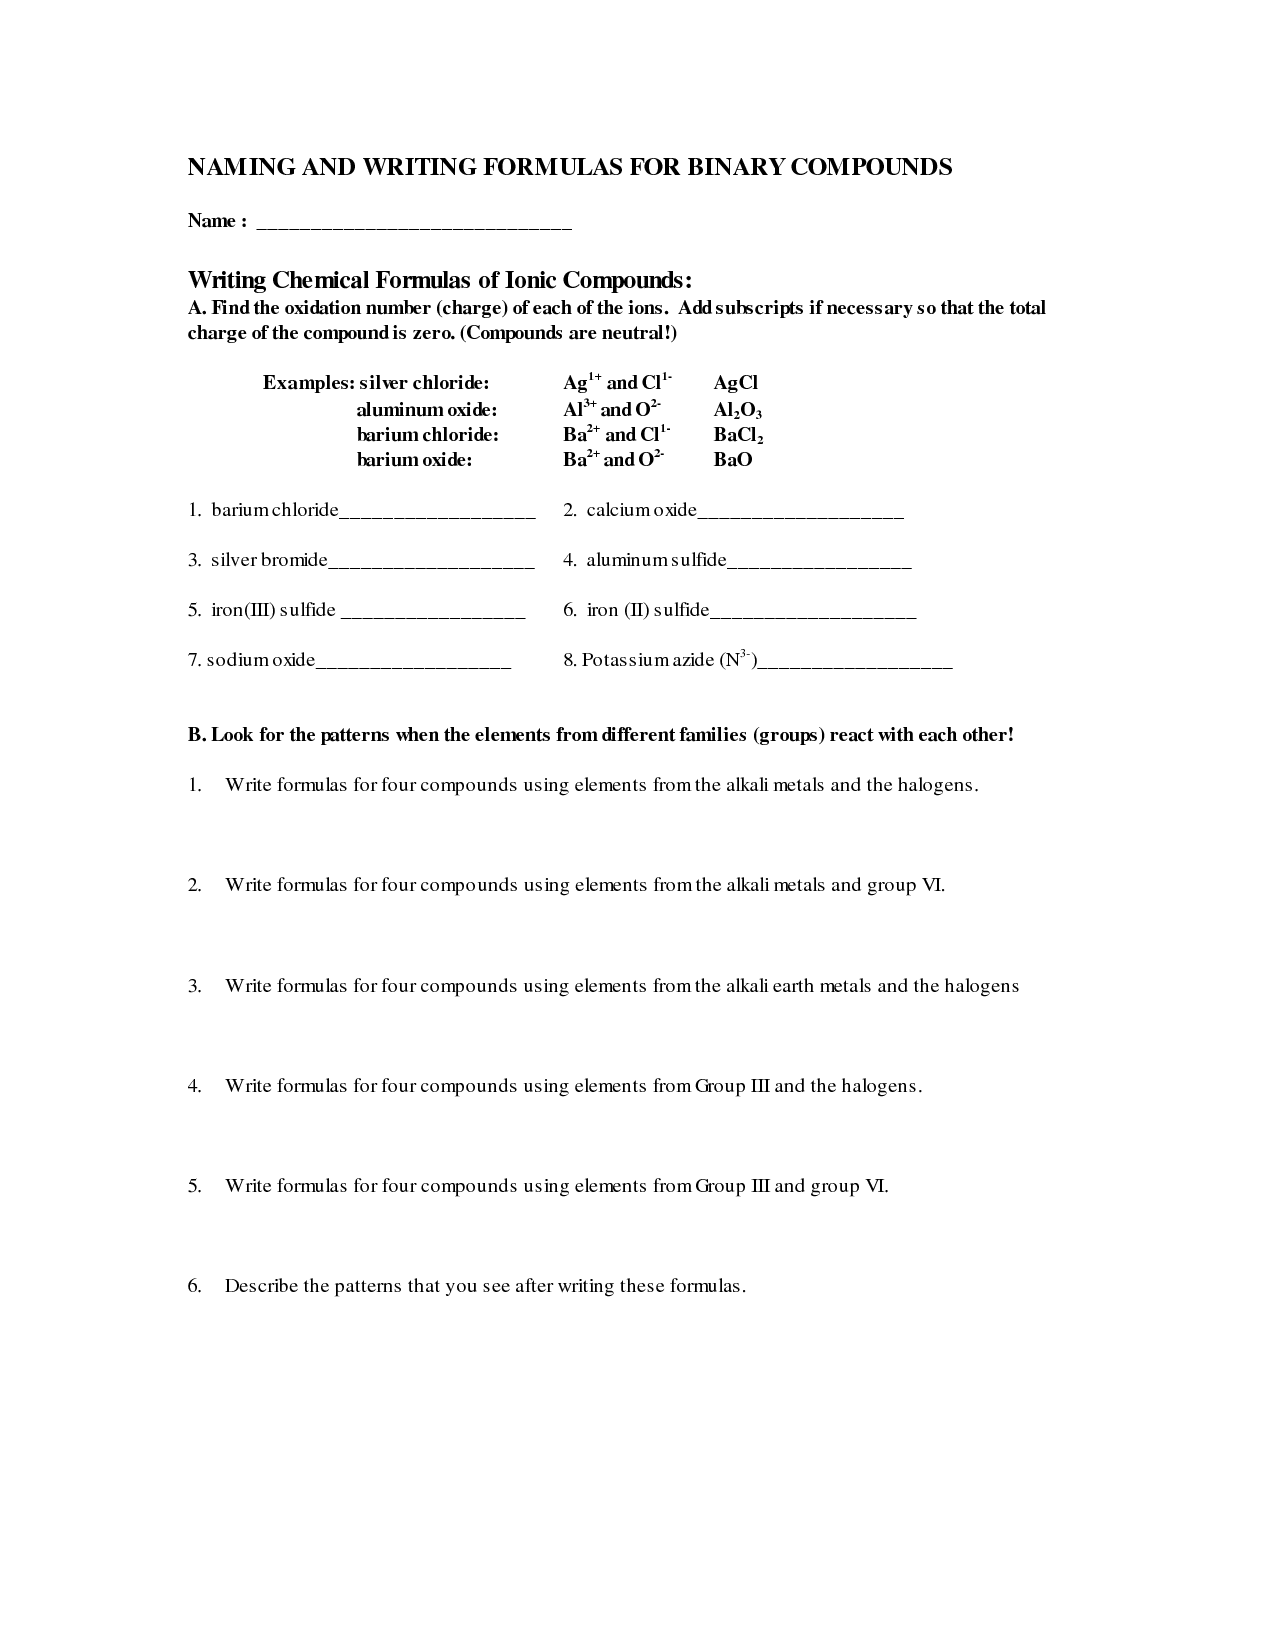 Writing Binary Formulas Worksheet Page 54